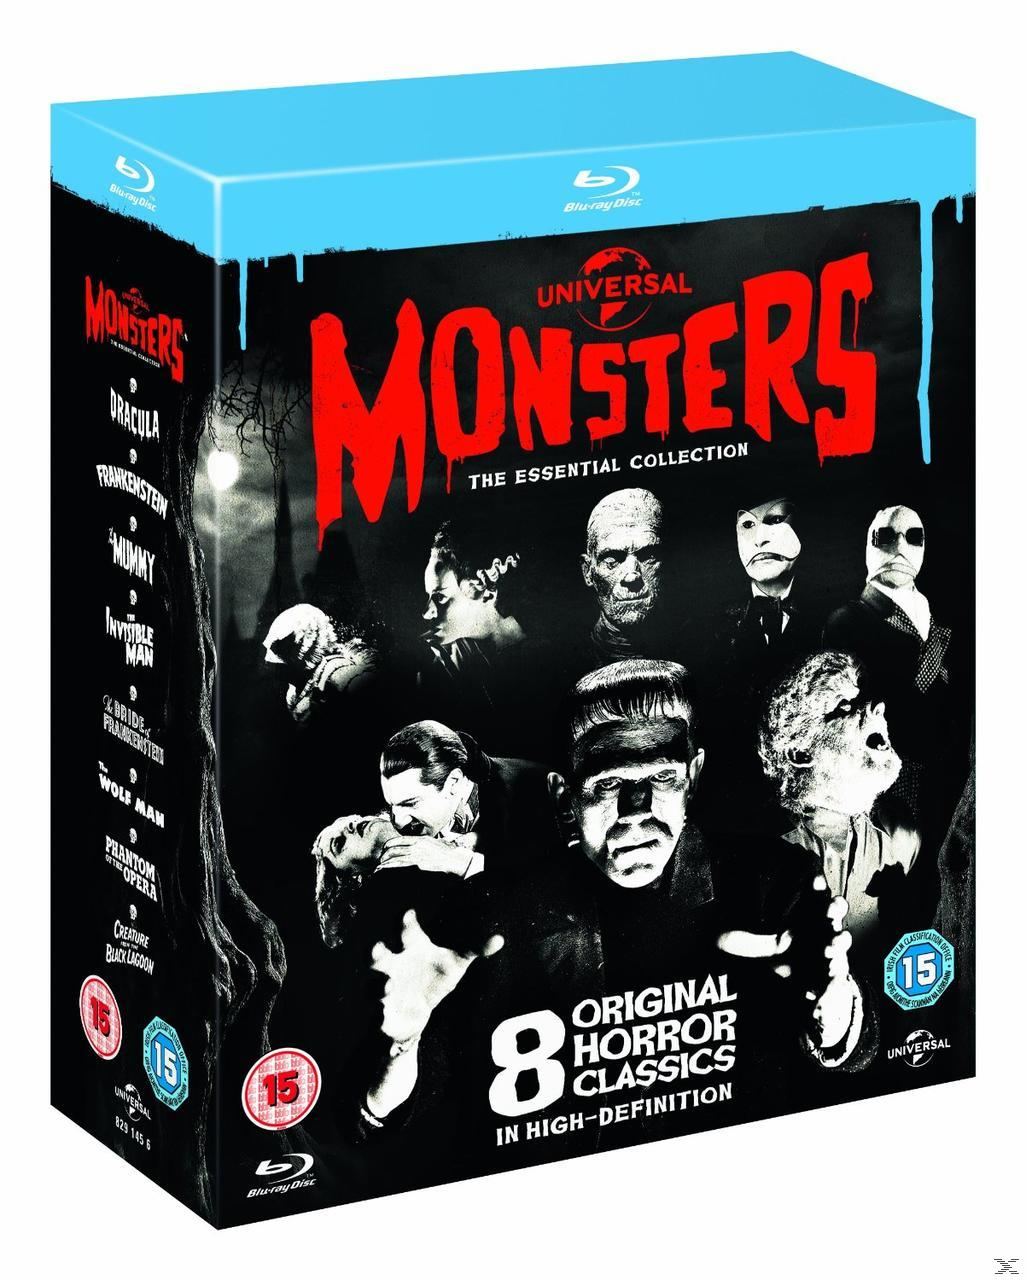 UNIVERSAL CLASSIC MONSTERS[BLU RAY]